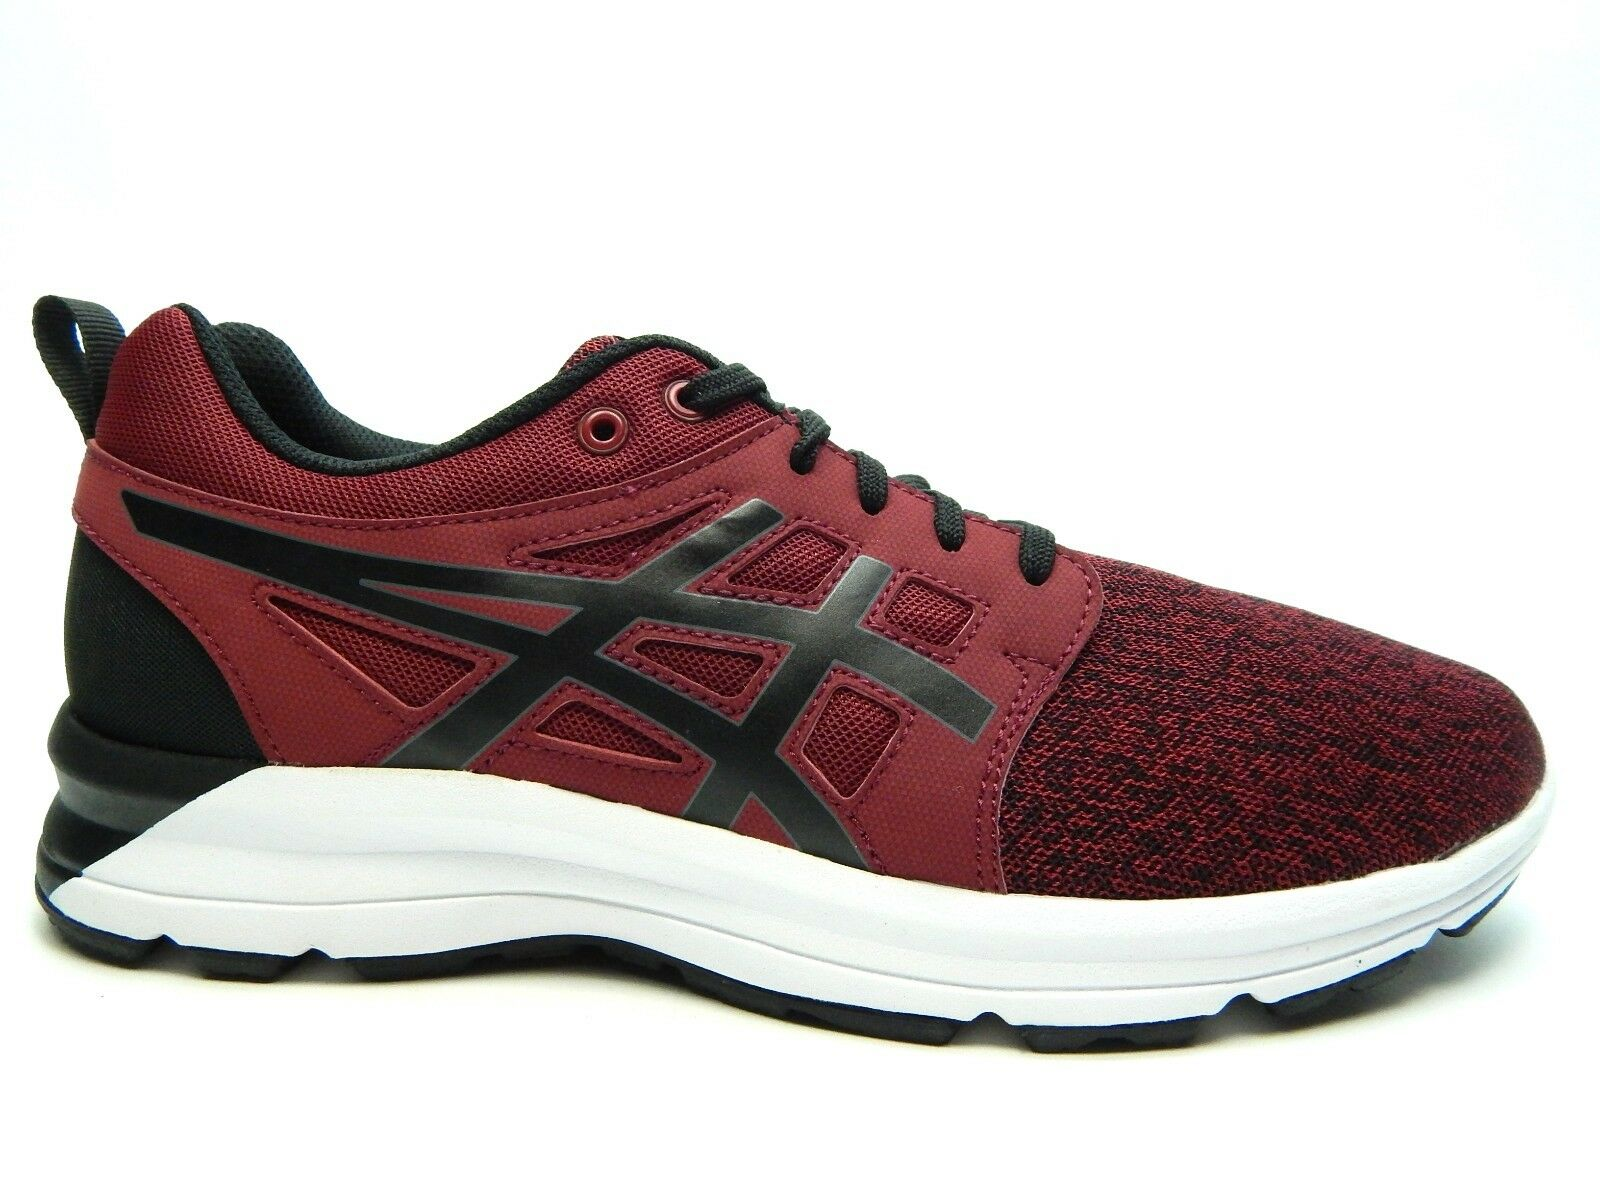 ASICS GEL TORRANCE T7J3N 2590 WINE BLACK CARBON MEN SHOES